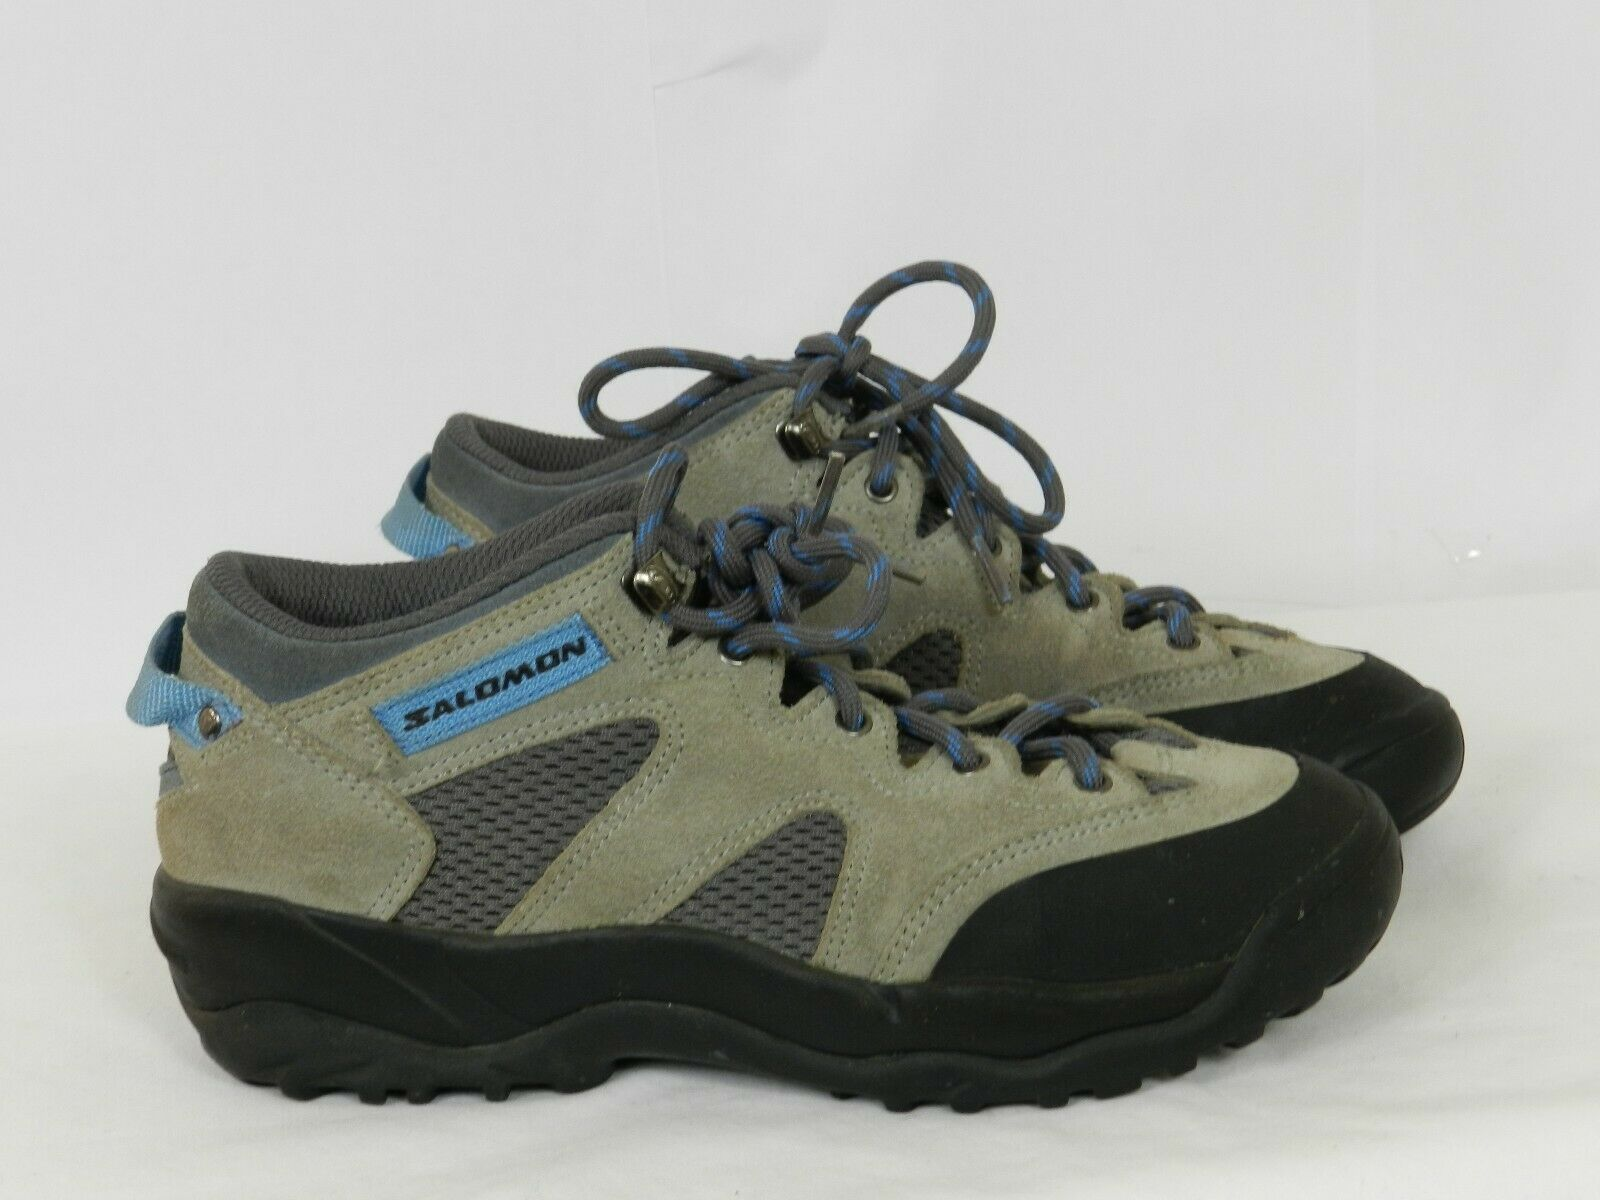 Salomon Contagrip Womens Hiking shoes Boots Size 6.5  Leather G   high quality genuine